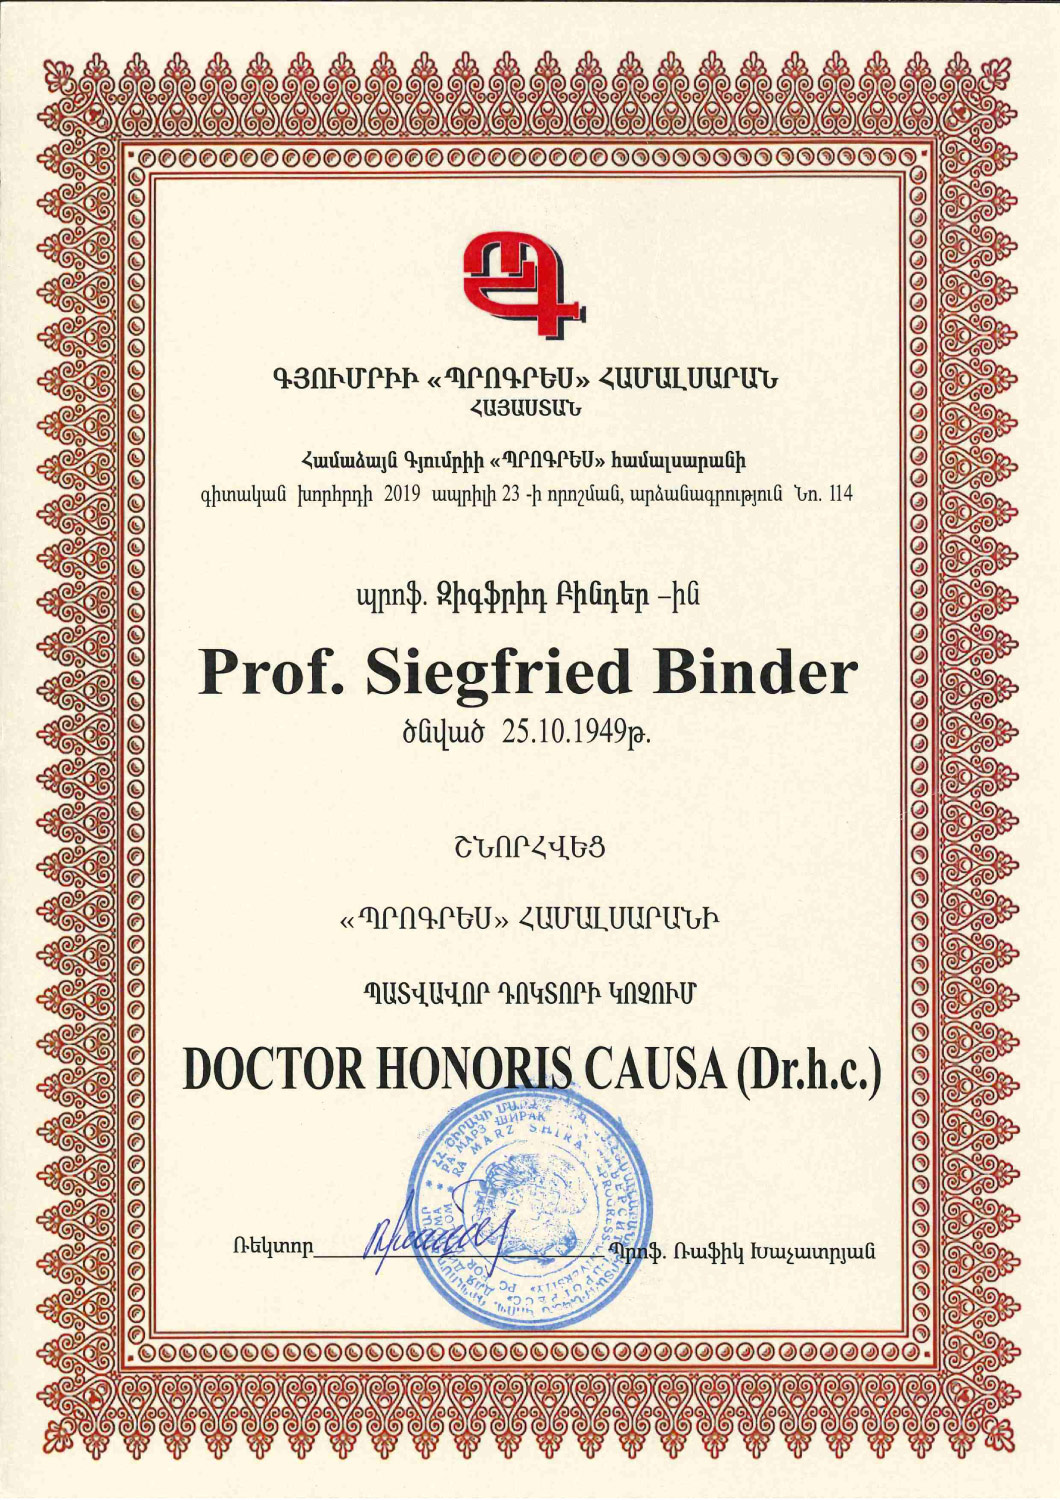 Prof. Siegfried Binder - Doctor Honoris Causa